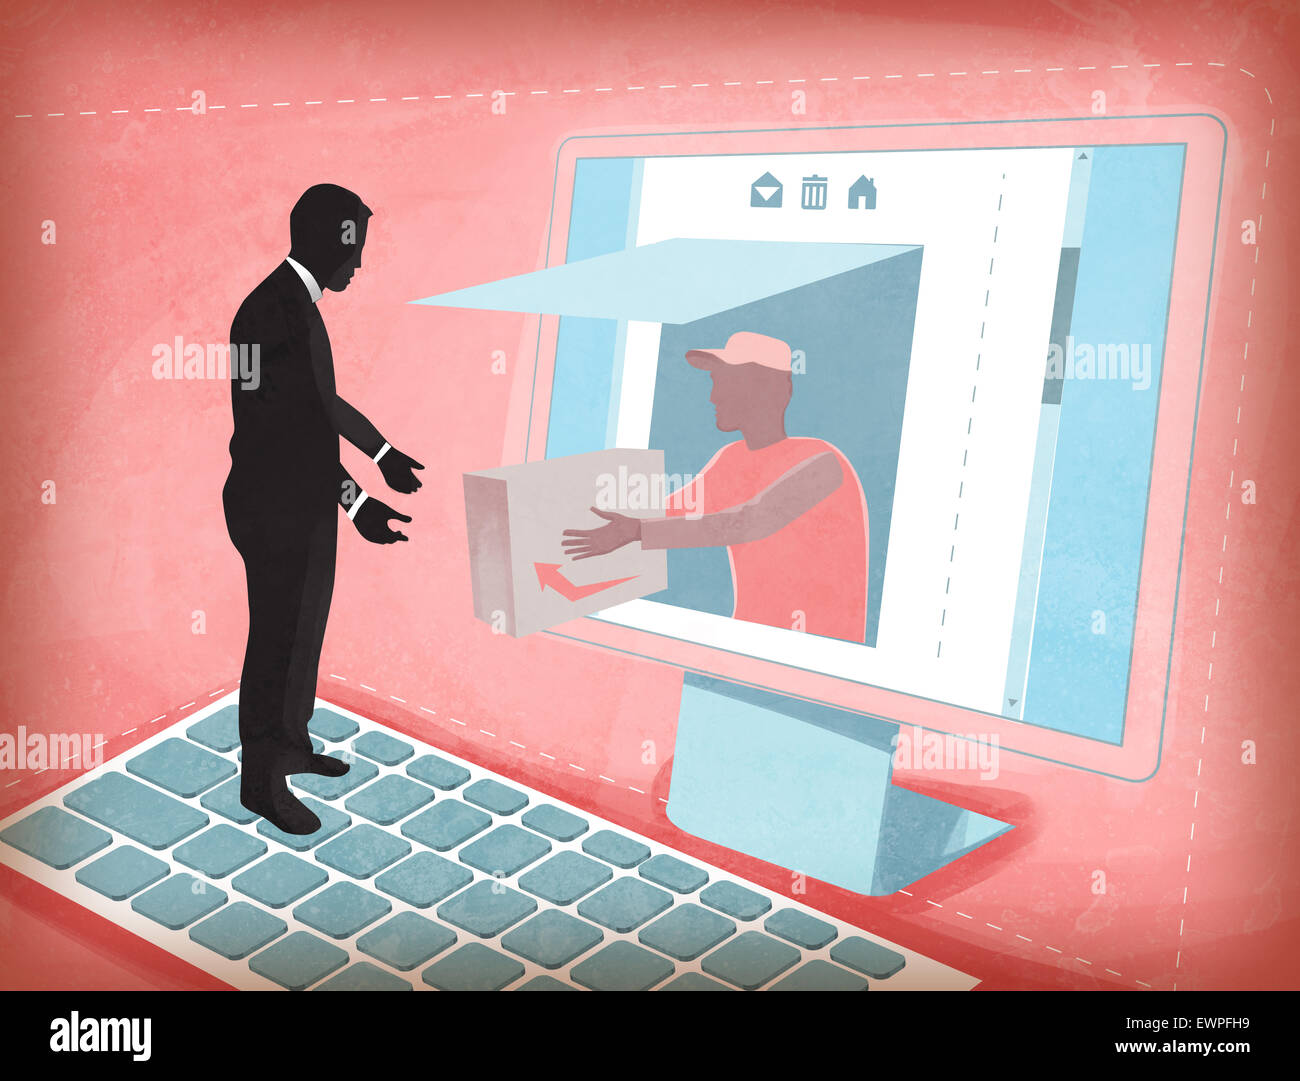 Delivery Man emerging out from computer monitor giving order to customer - Stock Image